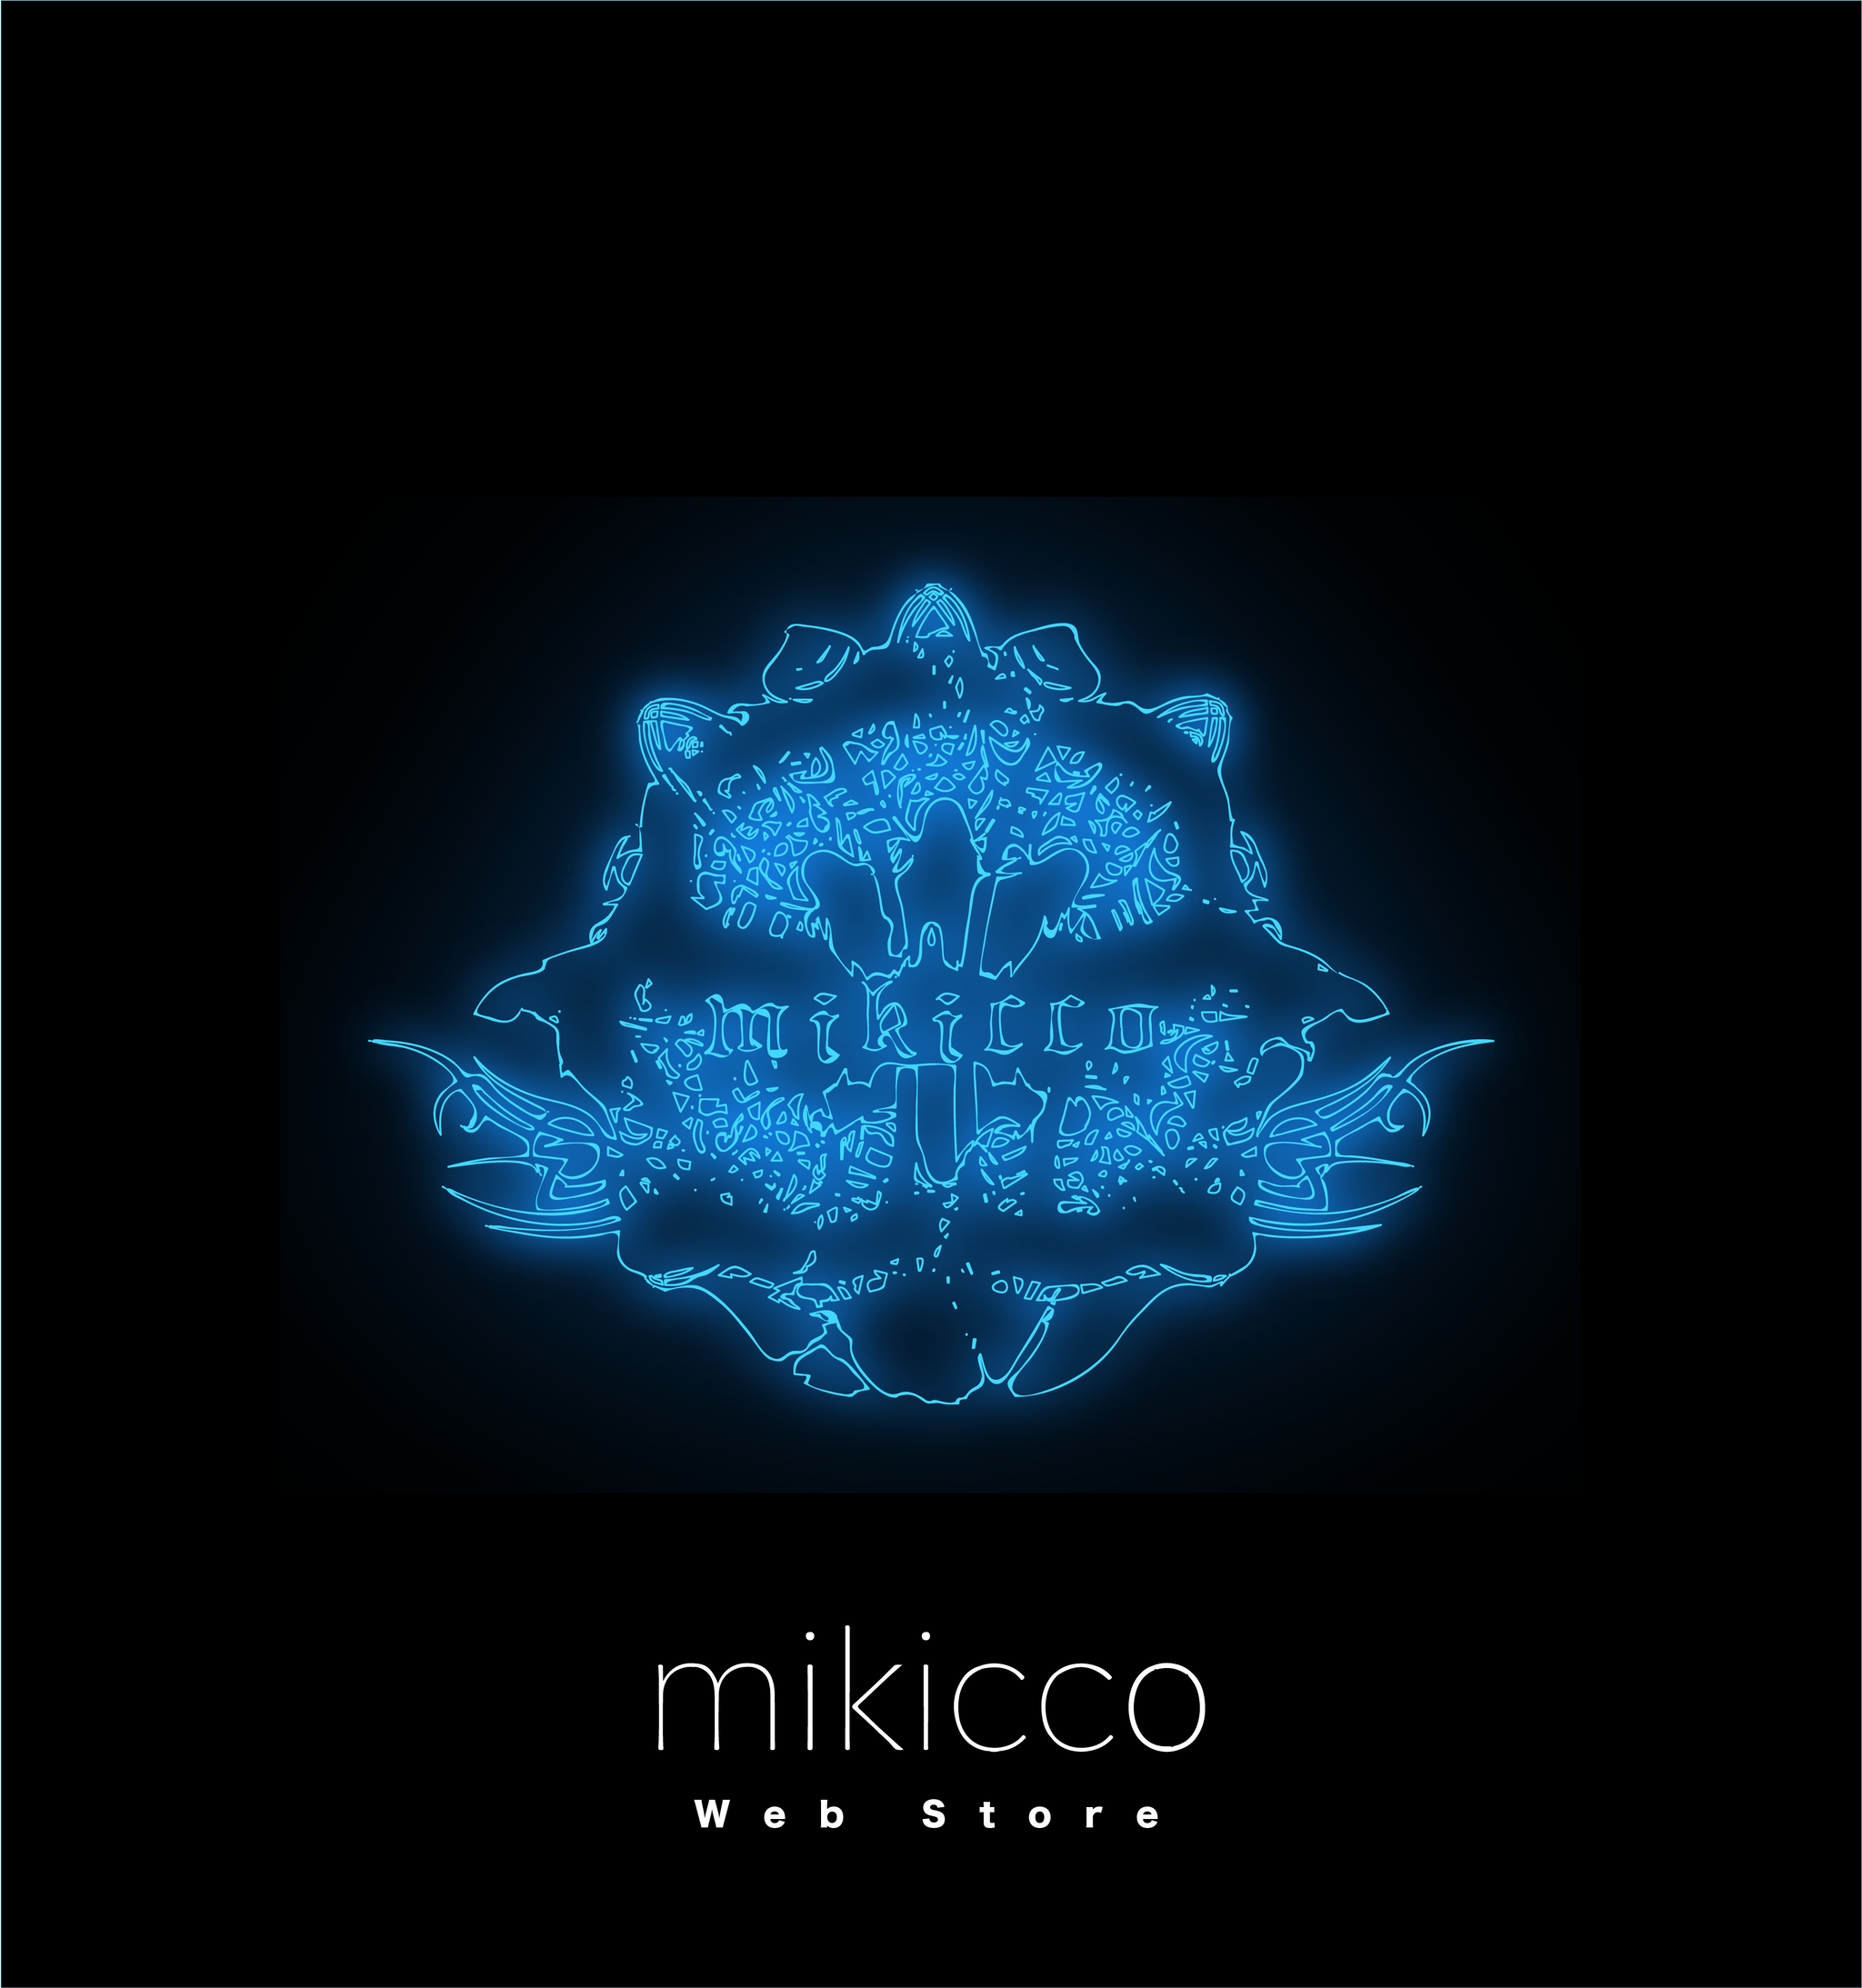 mikicco official website